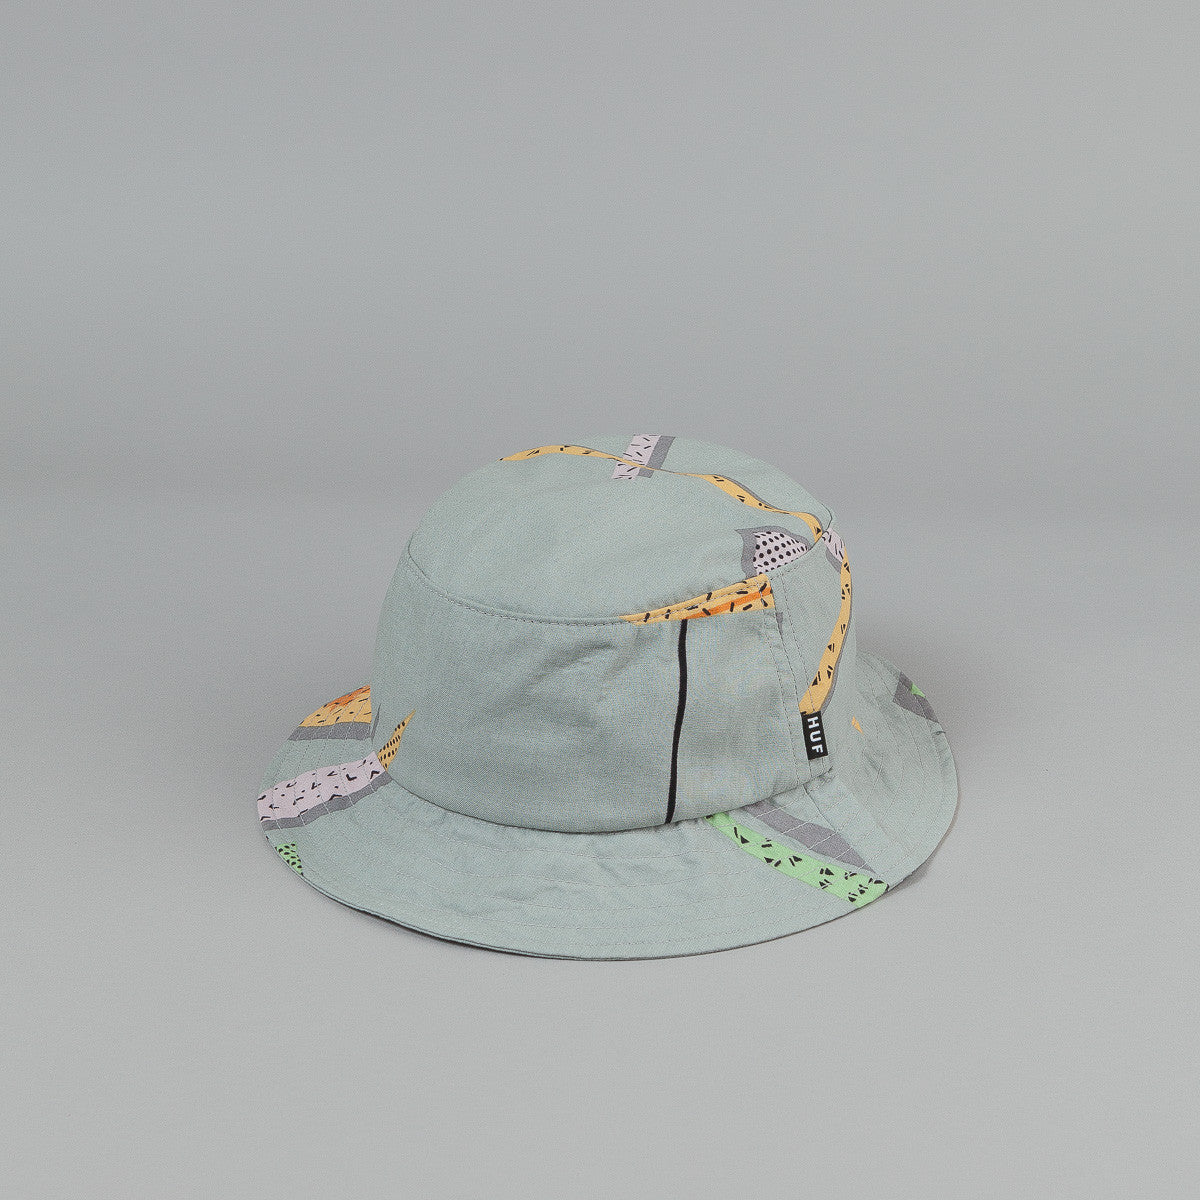 HUF 1986 Bucket Hat Cool Grey